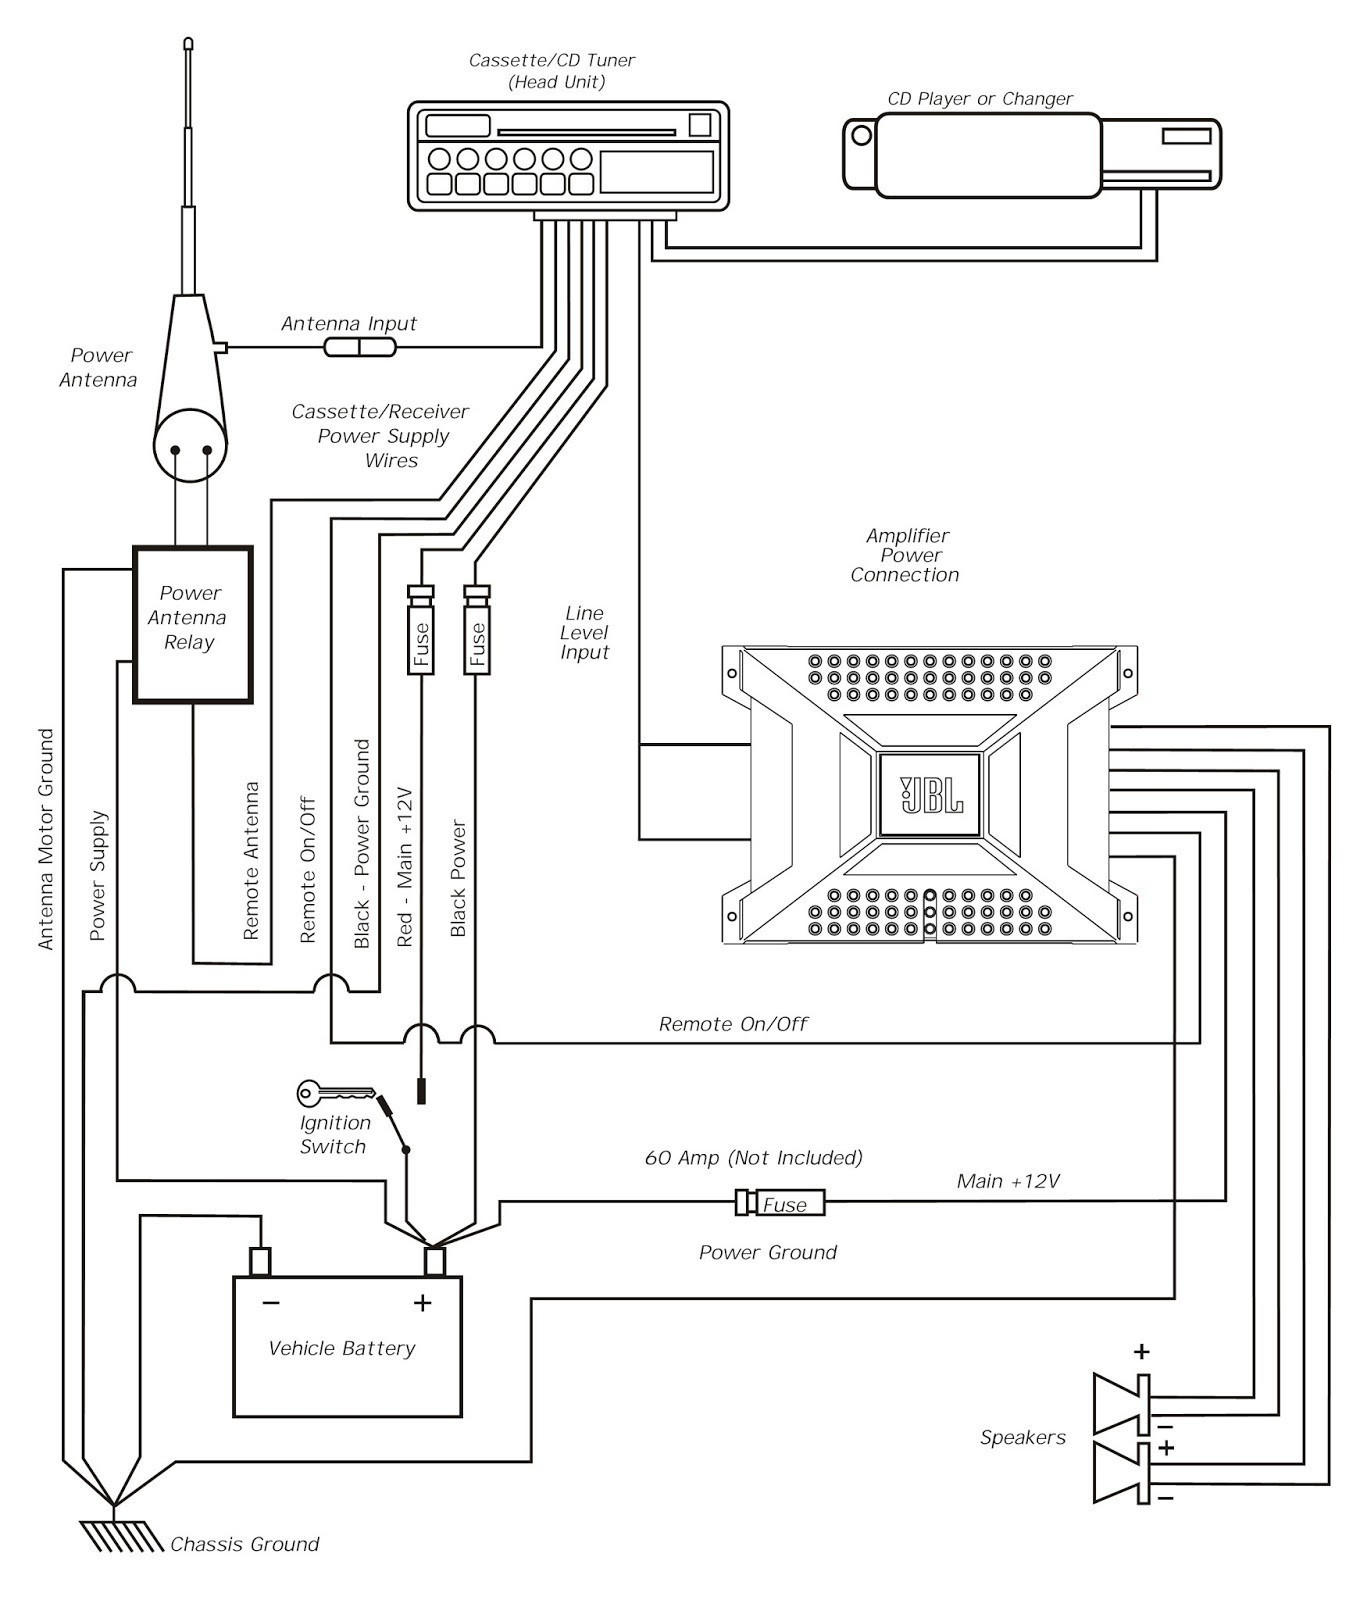 55 Awesome Bulldog Security Wiring Diagram Image | Wiring Diagram - Bulldog Remote Start Wiring Diagram